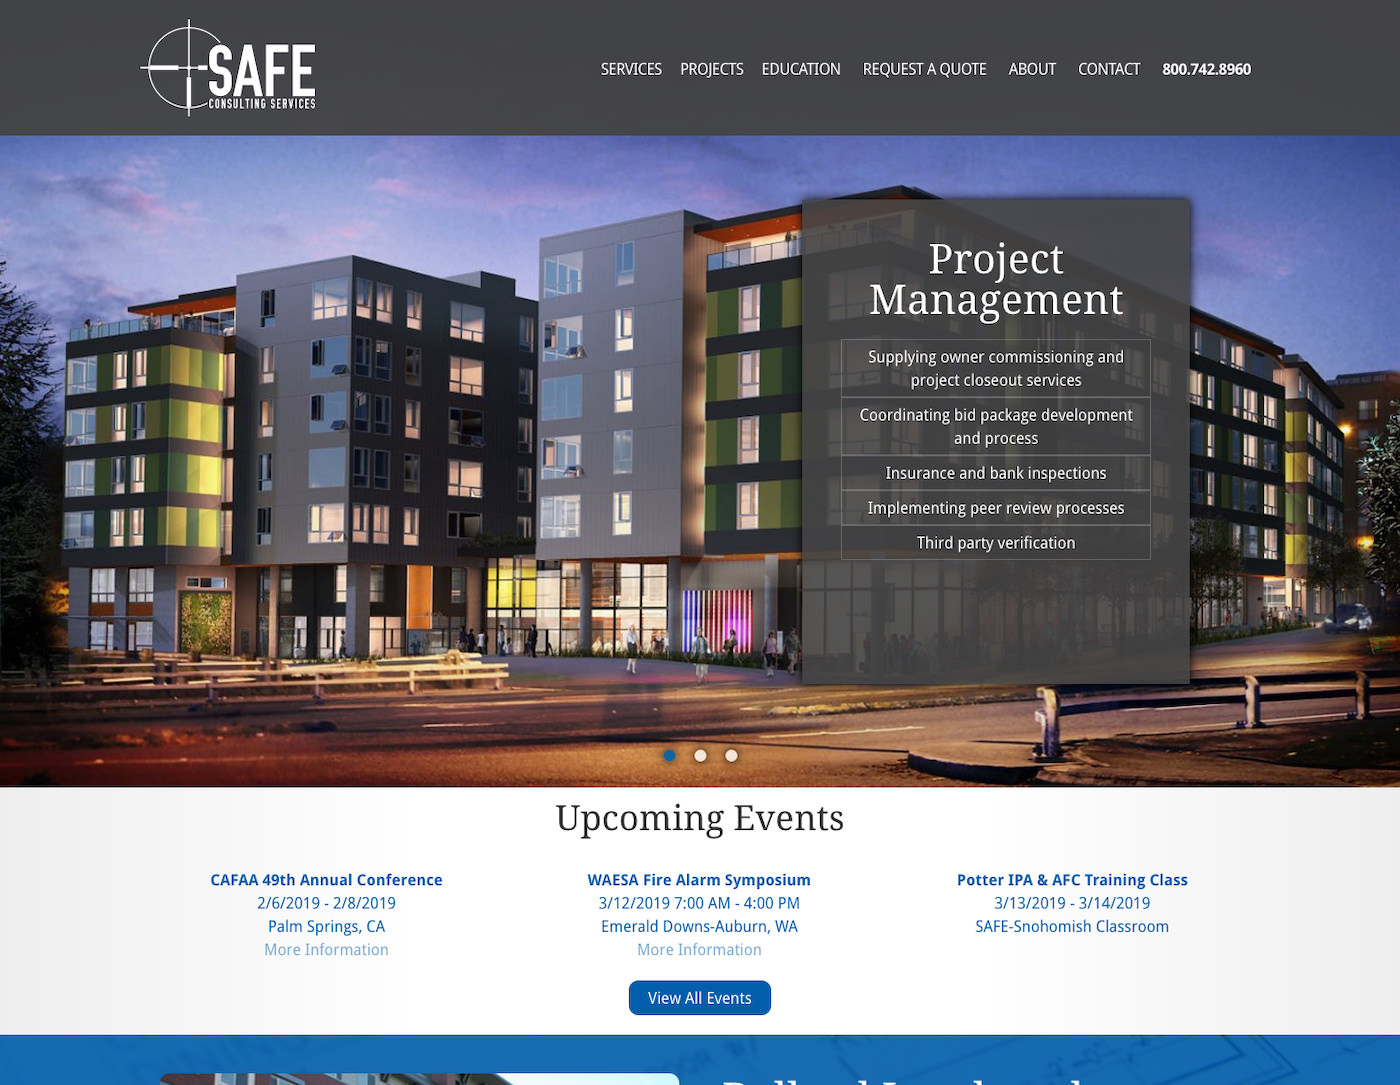 SafeConsulting.biz Website Design by Efinitytech Seattle